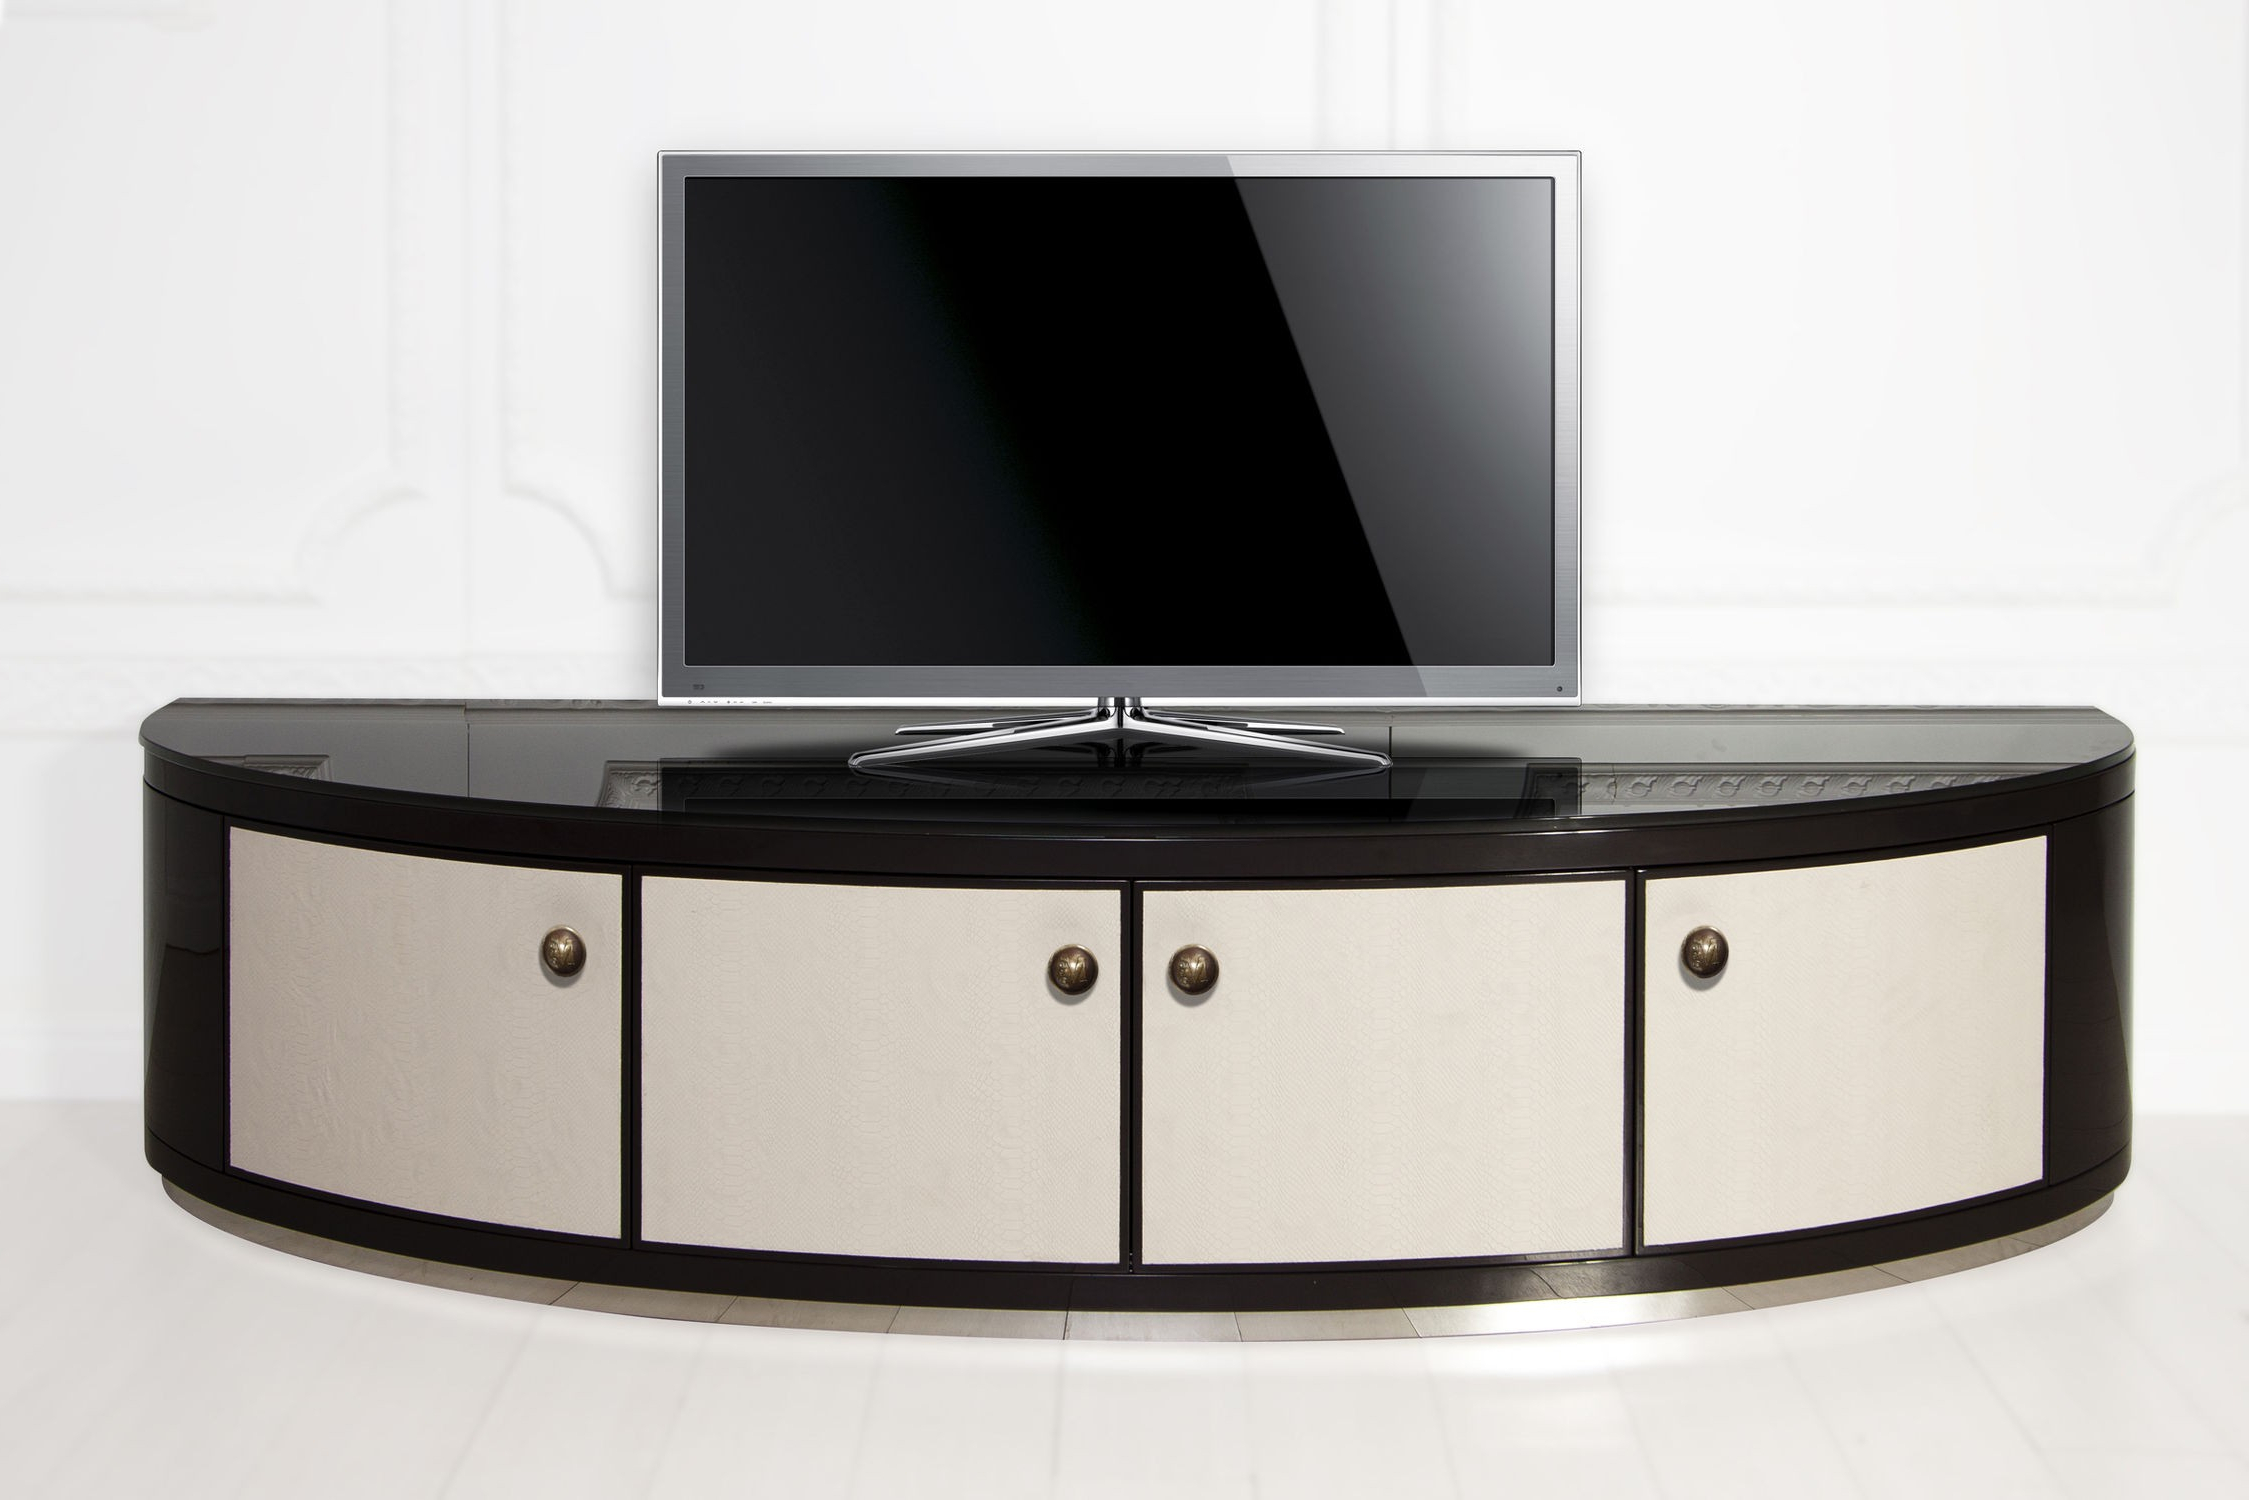 Lockable Tv Stands Regarding Well Liked Half Rounded Black Stained Wooden Tv Stand With White Door Panel And (View 10 of 20)